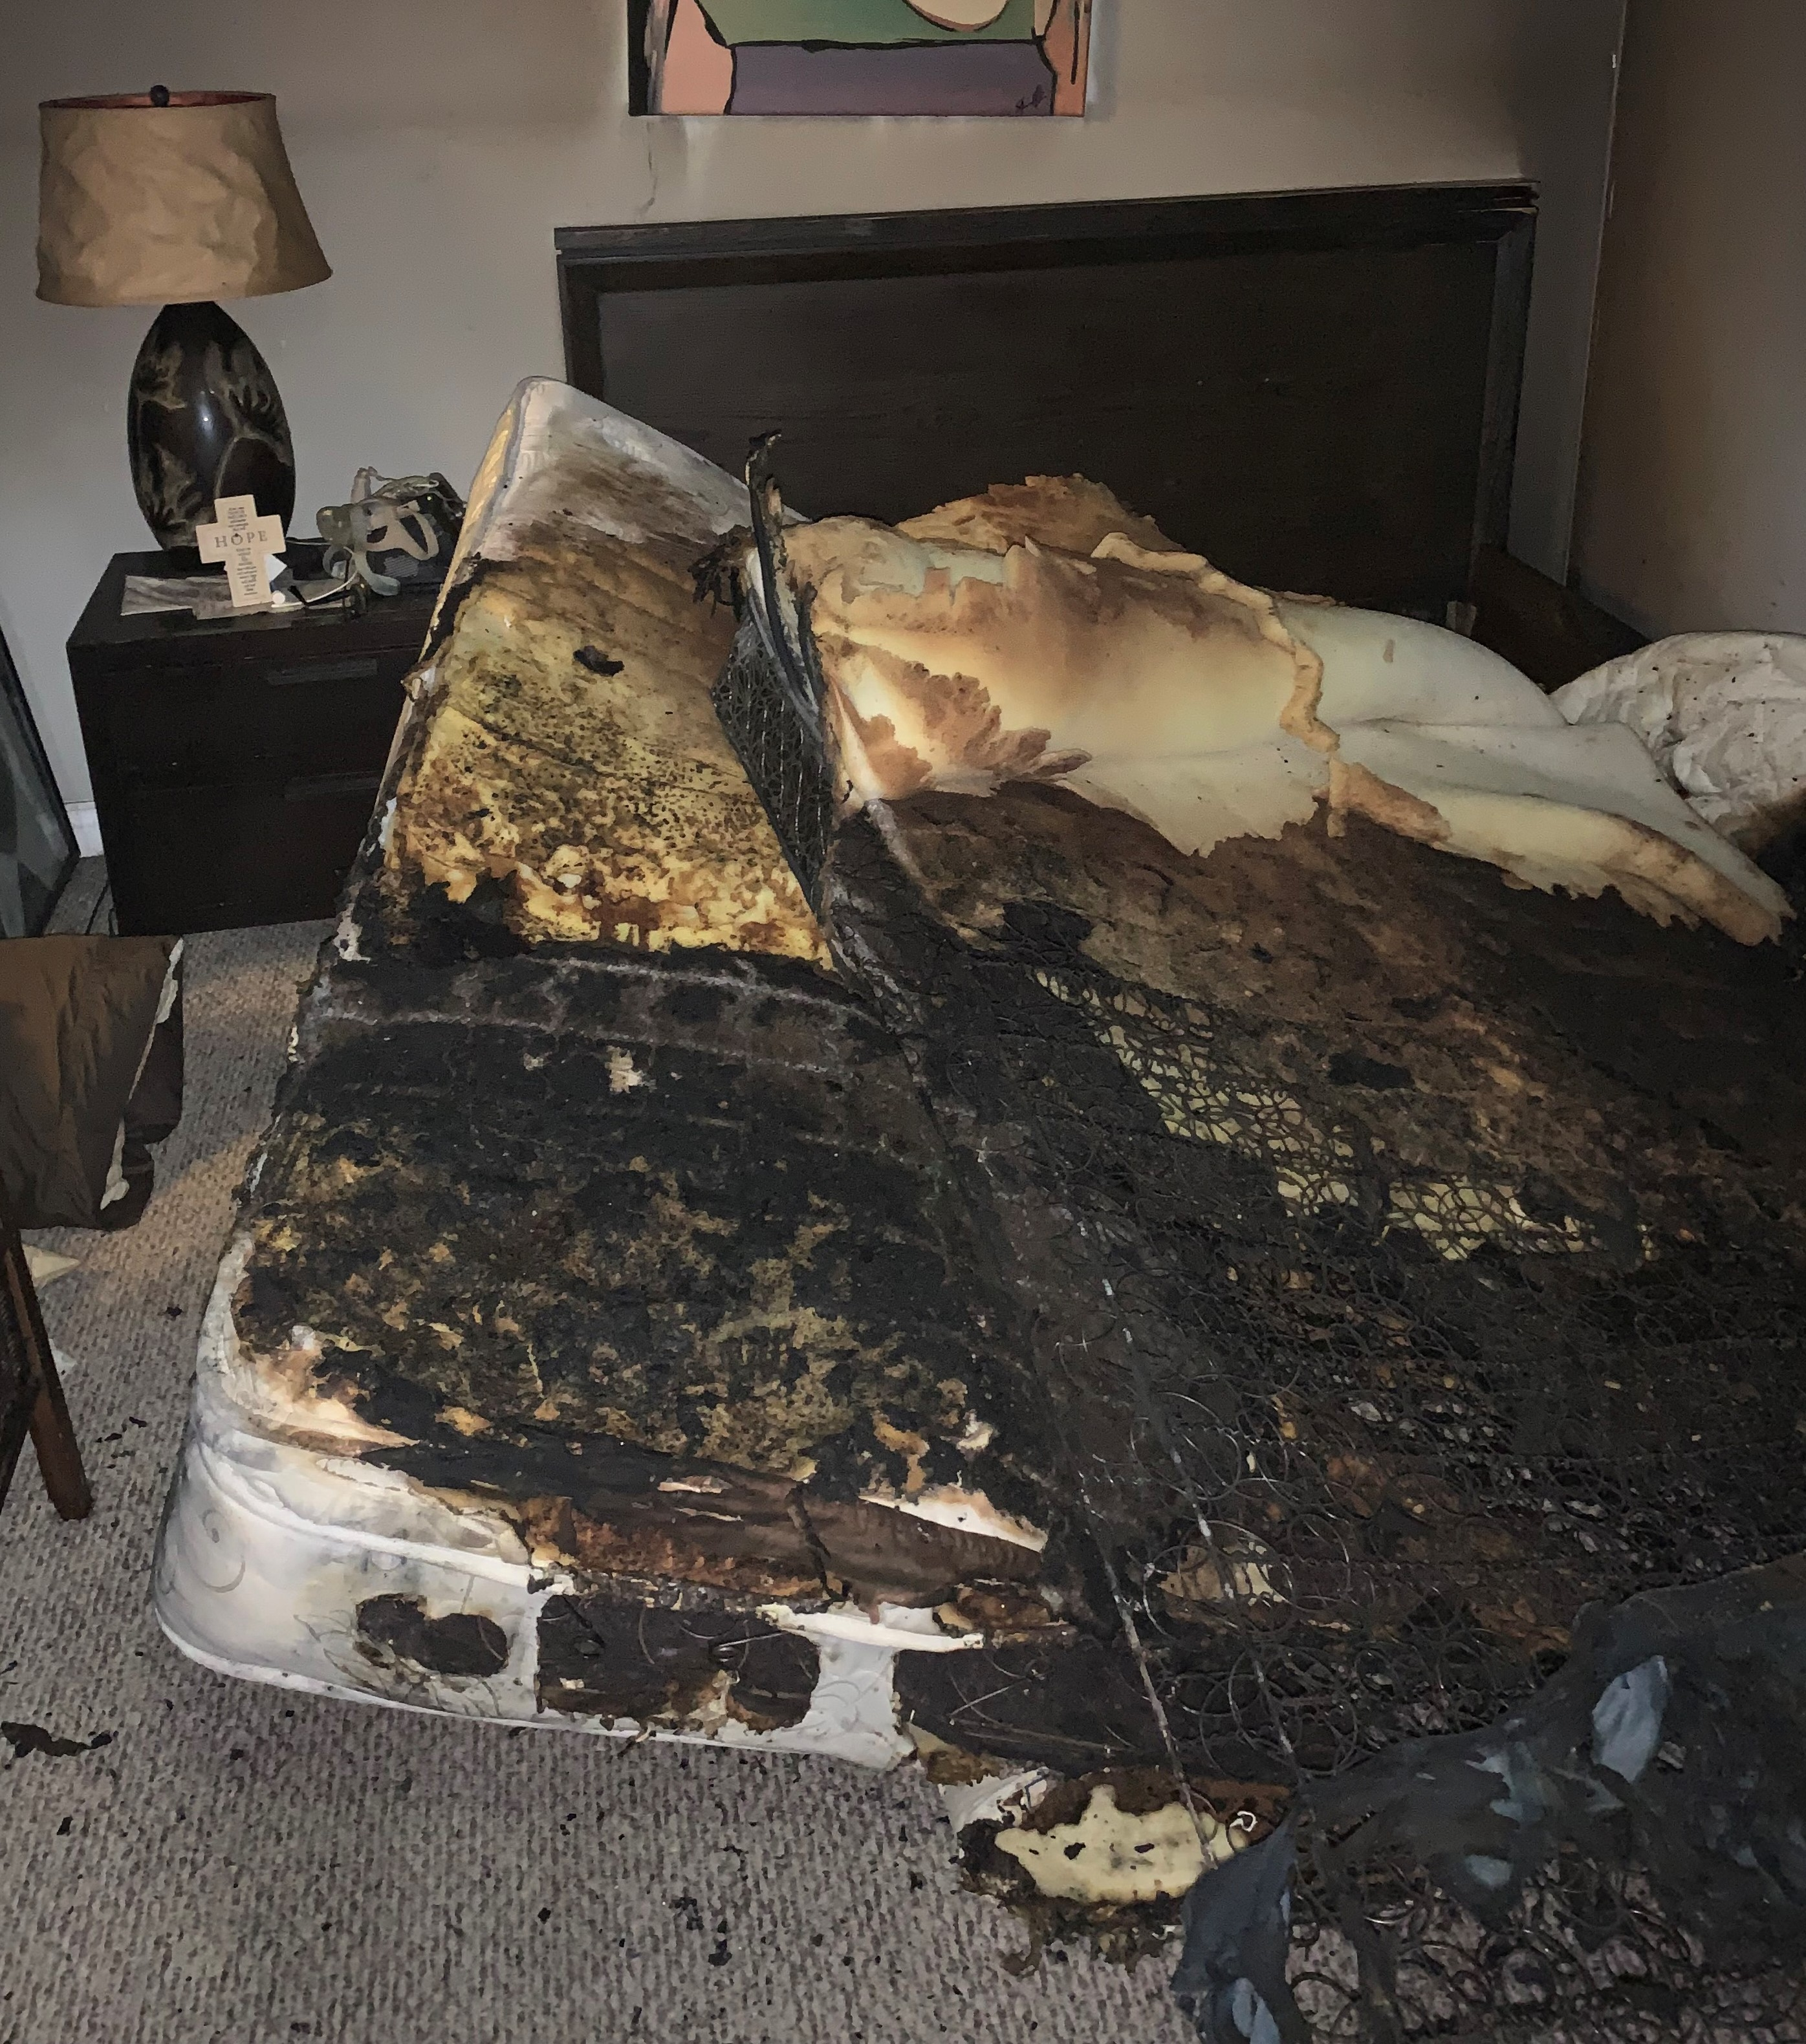 A burnt mattress at the scene of a fire in Courtice